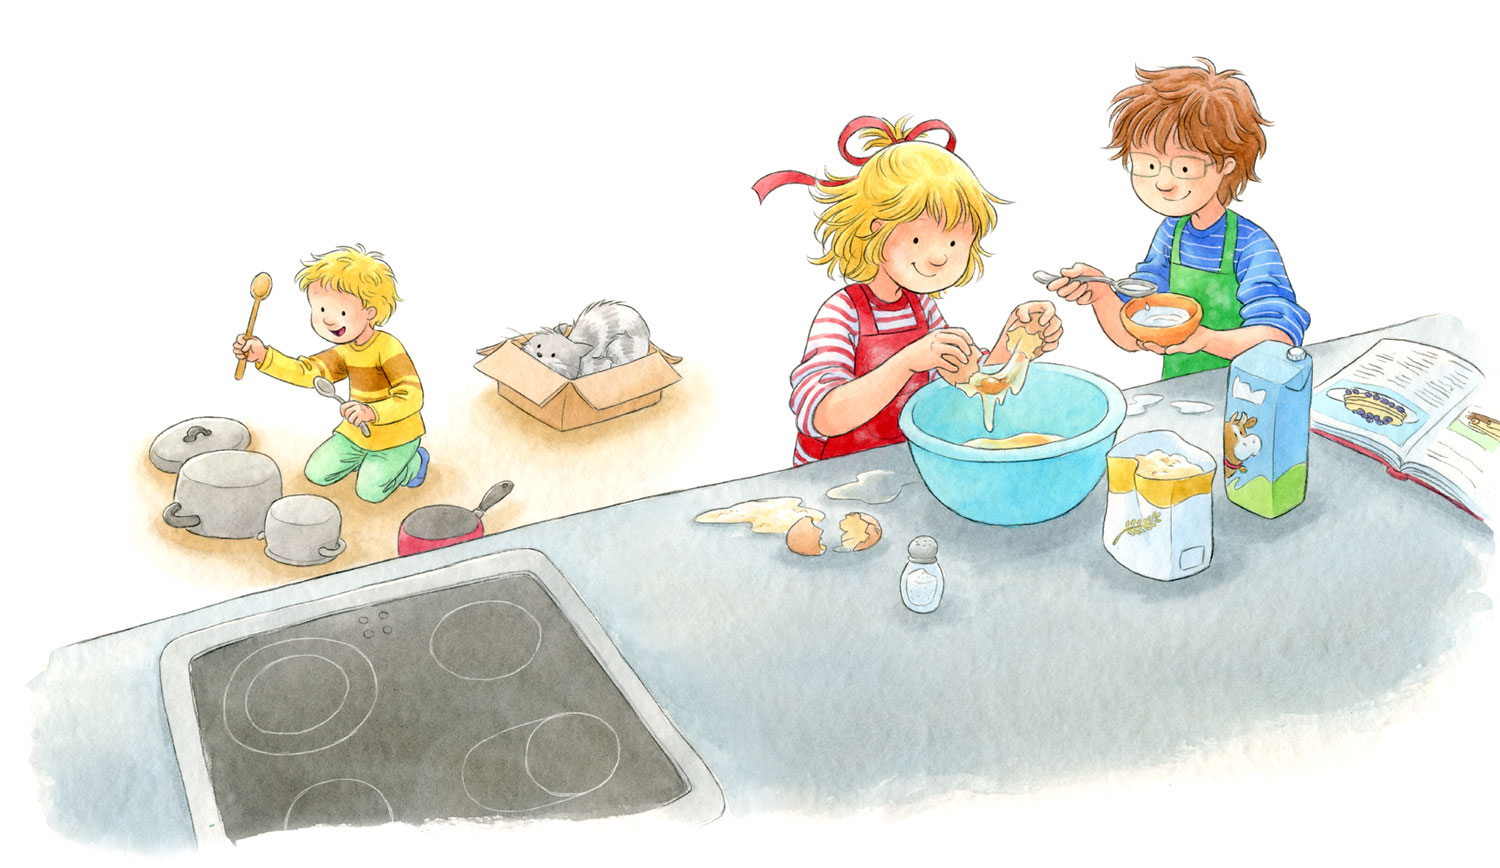 Sample page from 'Conni makes pancakes'